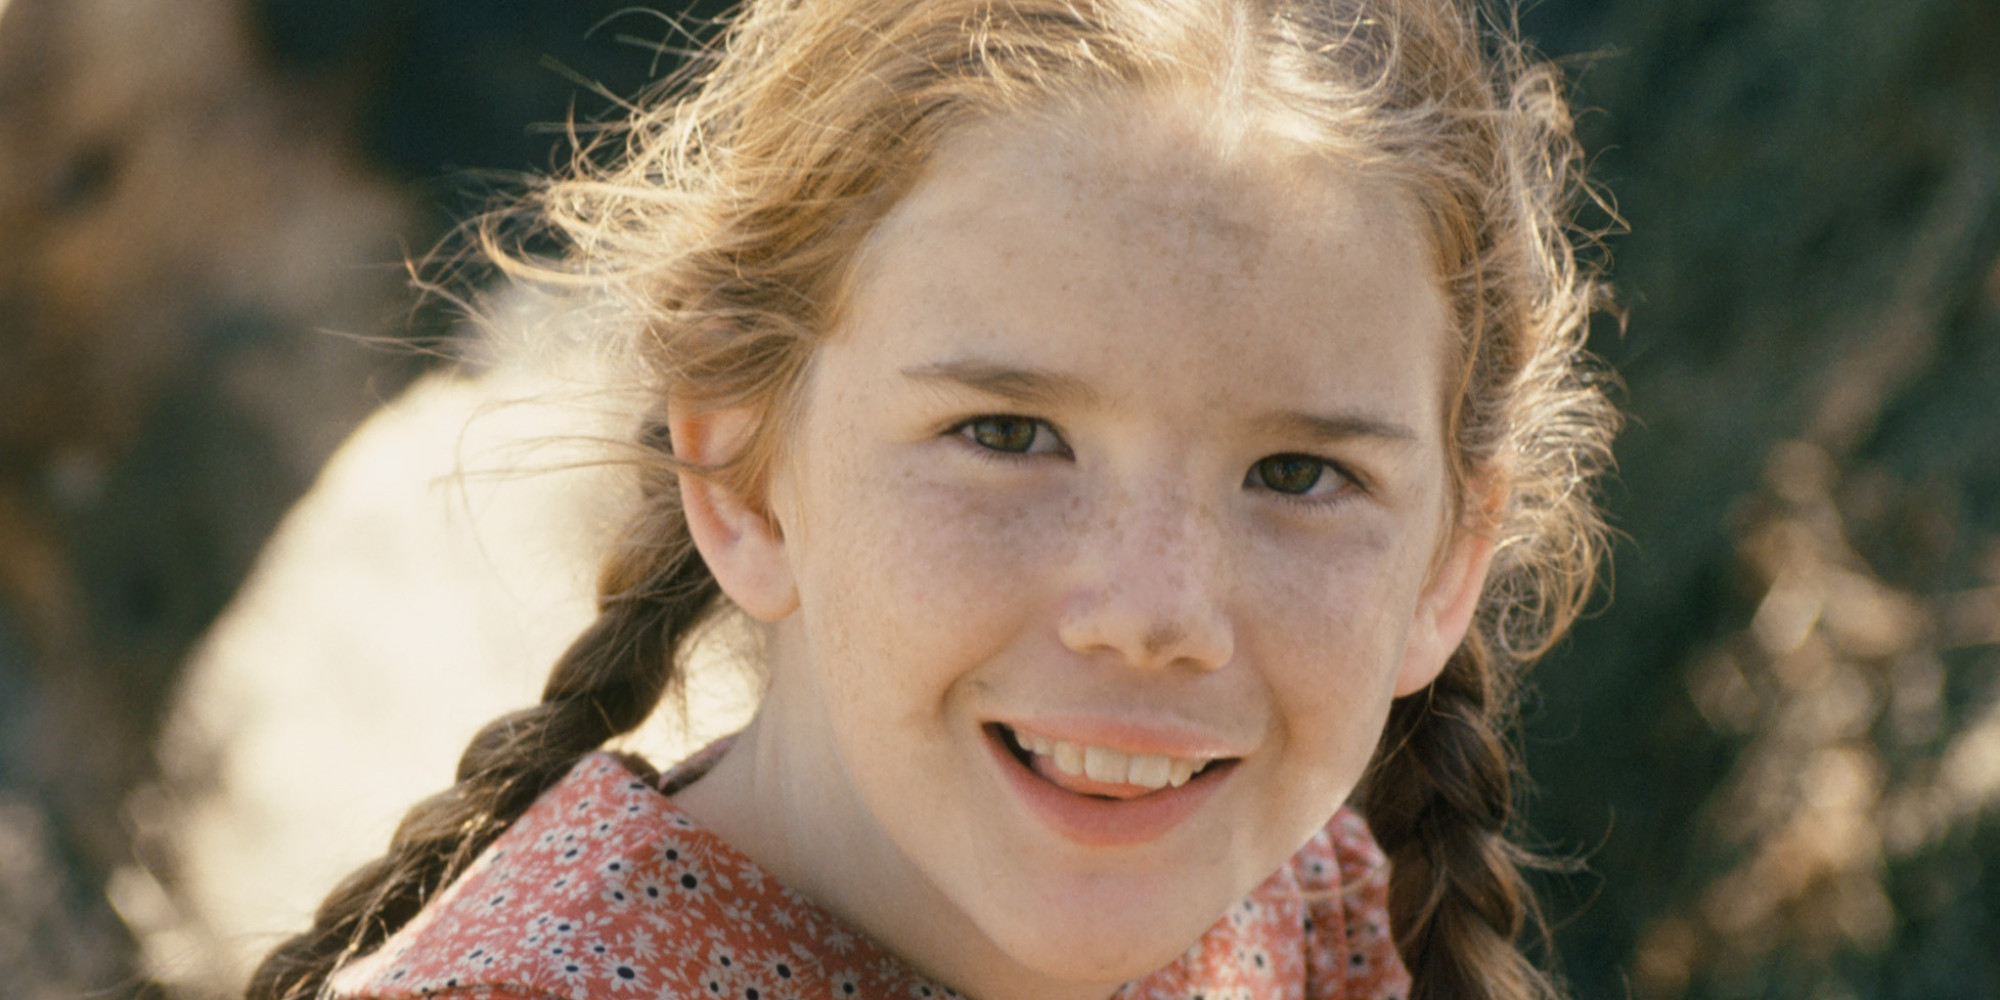 melissa gilbert's closest friend from 'little house on the prairie